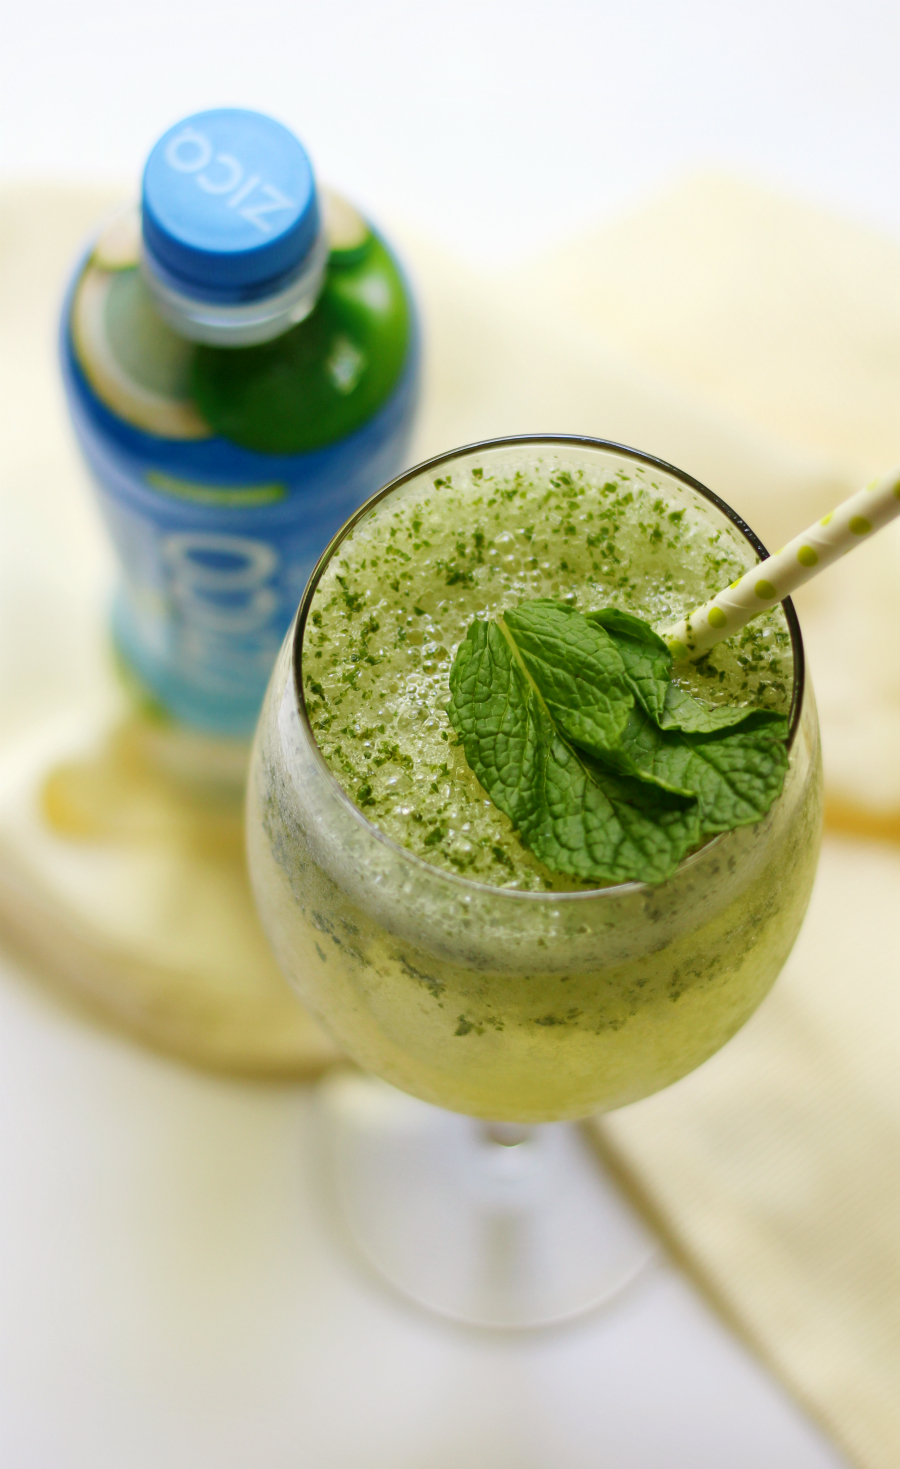 Frosty Coconut Mint Green Tea Mocktail | Strength and Sunshine @RebeccaGF666 Need a little refreshment? A Frosty Coconut Mint Green Tea Mocktail will have you feeling hydrated, healthy, and luxurious! Just 3 simple ingredients are you will be sipping all day long! Gluten-free, vegan, and paleo. A summer drink for all ages! sponsored